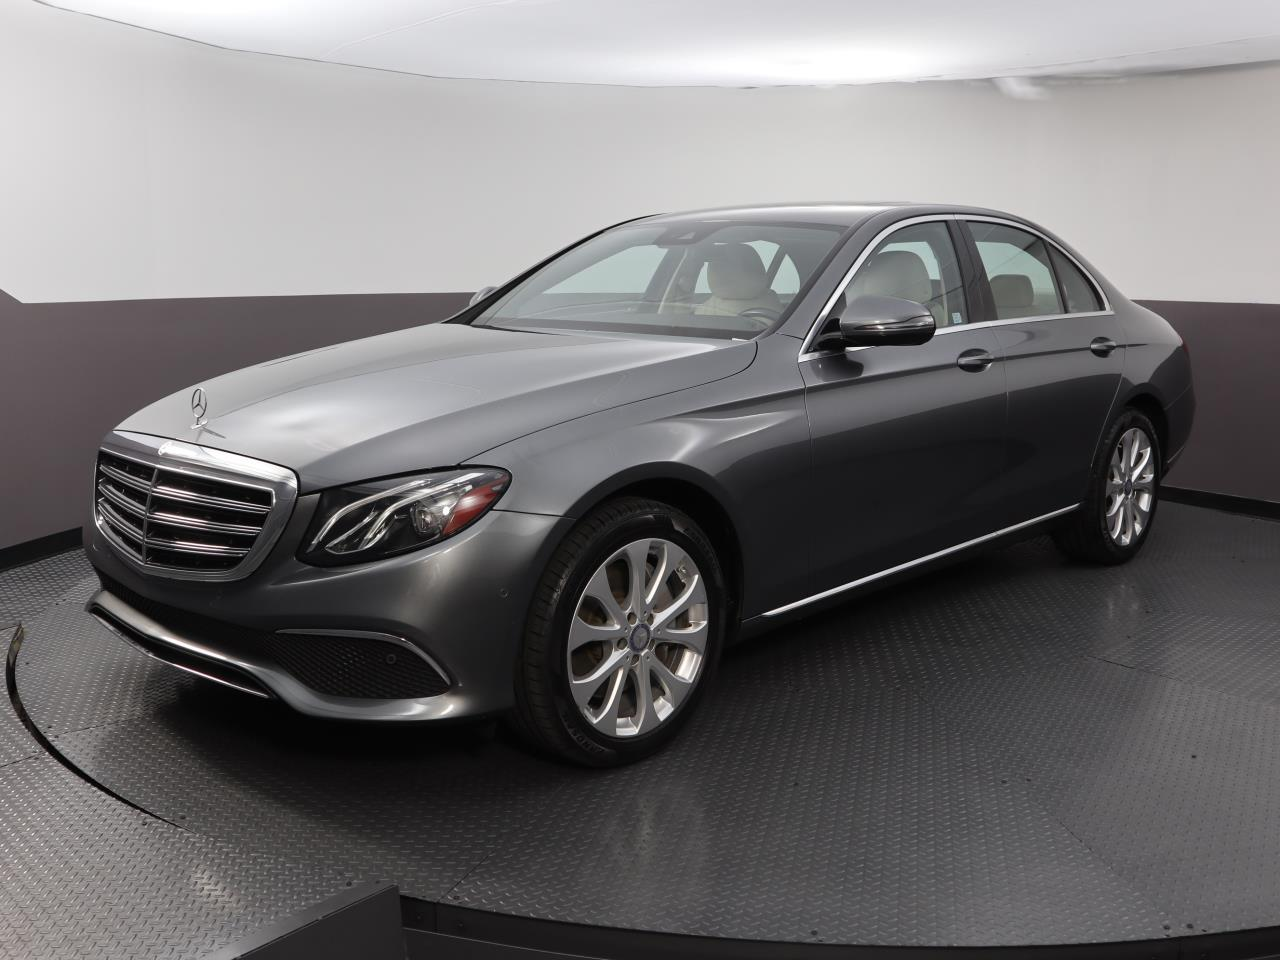 Used MERCEDES-BENZ E-CLASS 2017 WEST PALM E 300 LUXURY